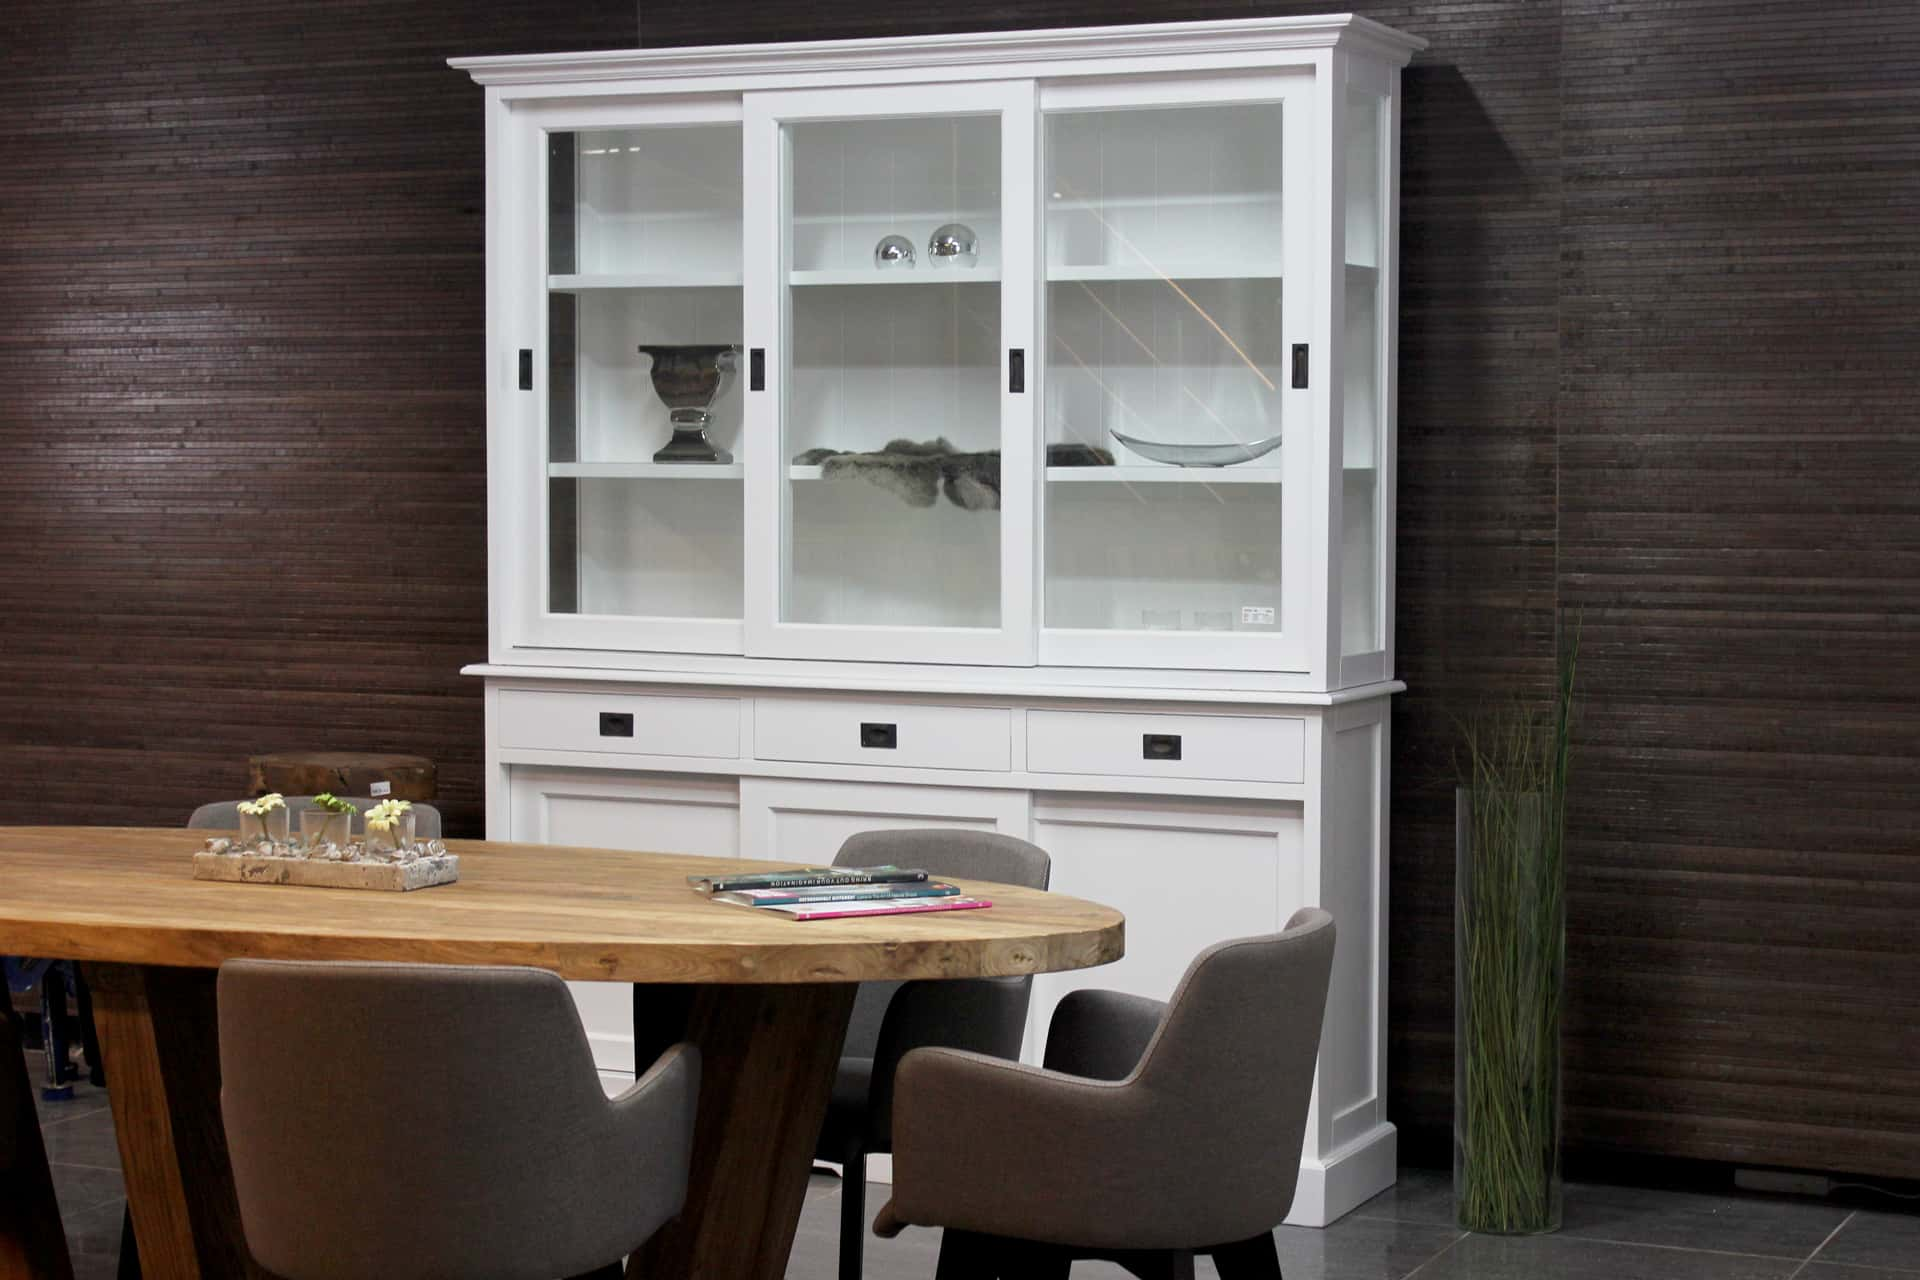 Cerah 180L SW | modern white display cabinet with faceted glass and slim design. Cheap display cabinets & buffet cabinets white & sliding doors at TEAK2.